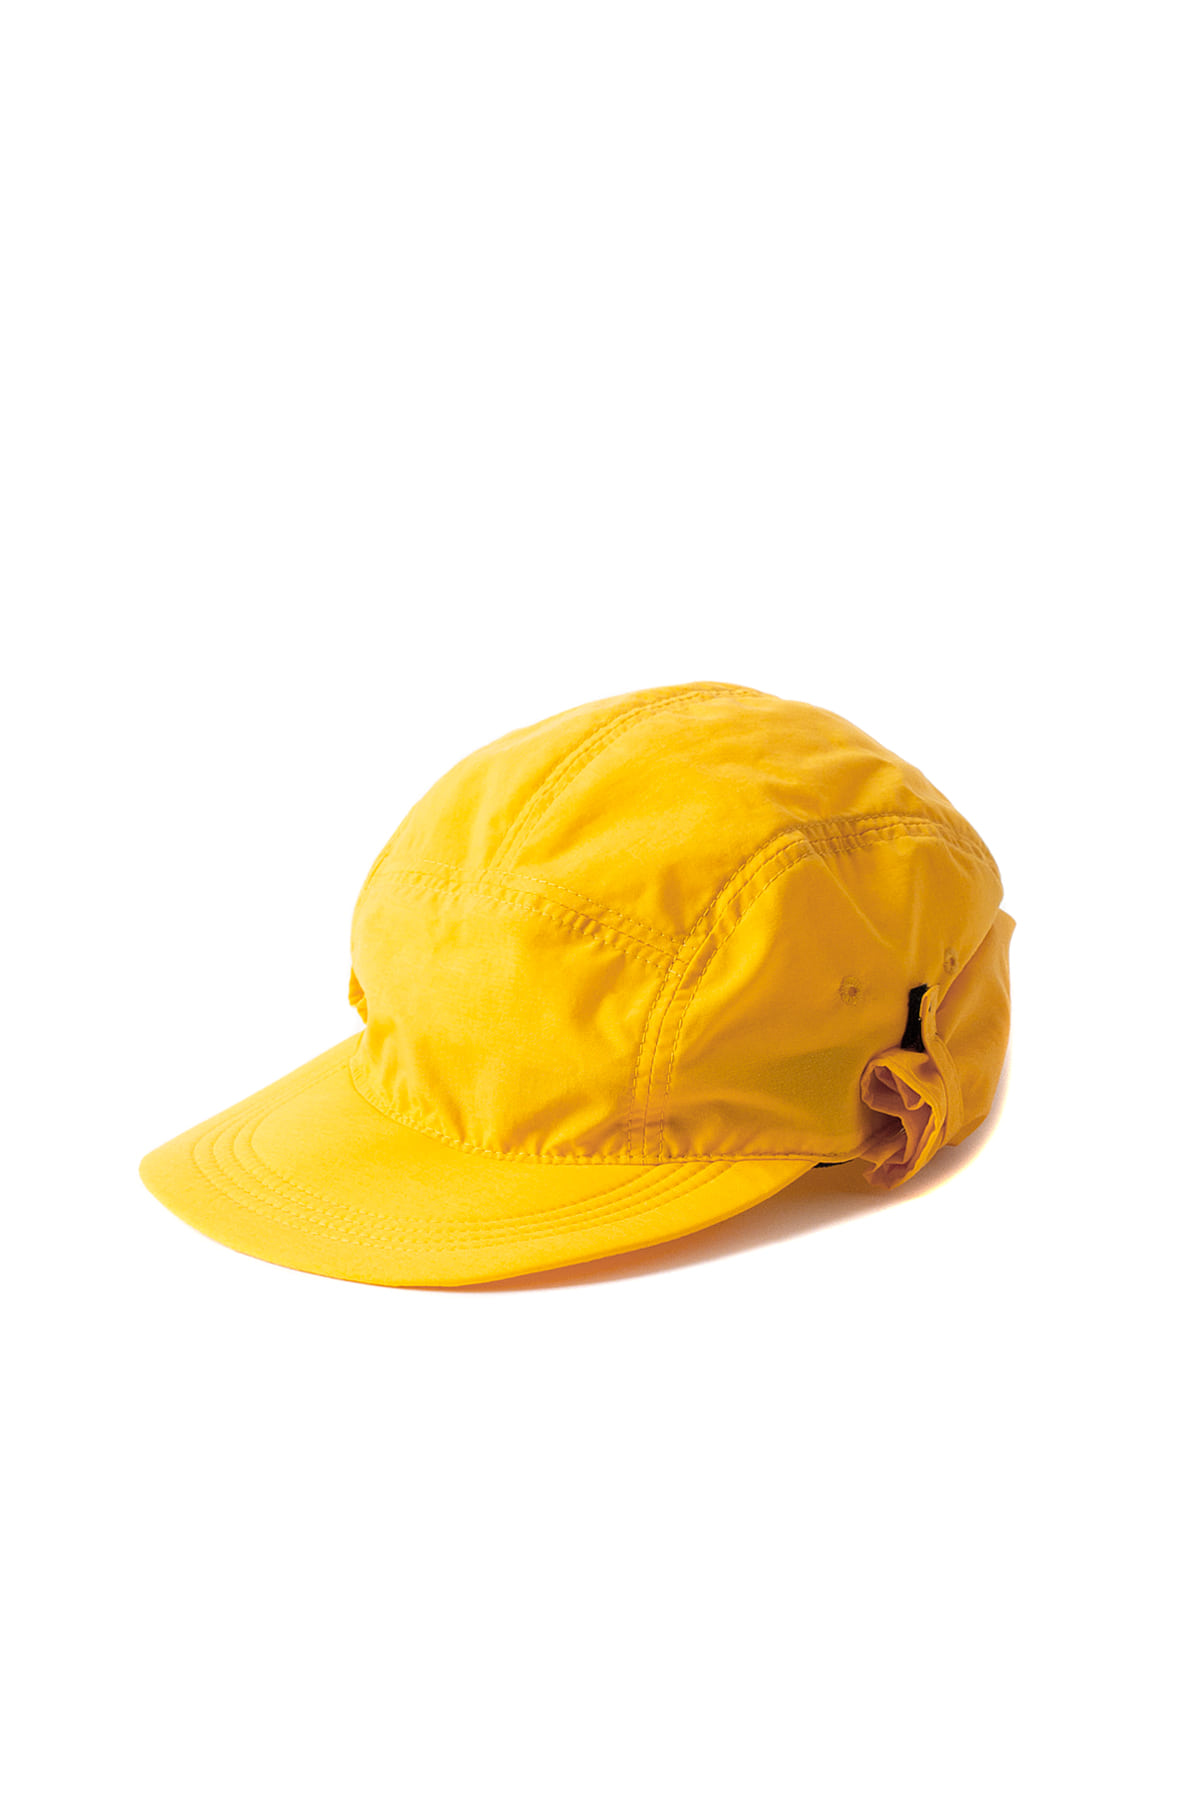 Infielder Design : Sun Cap (Yellow)